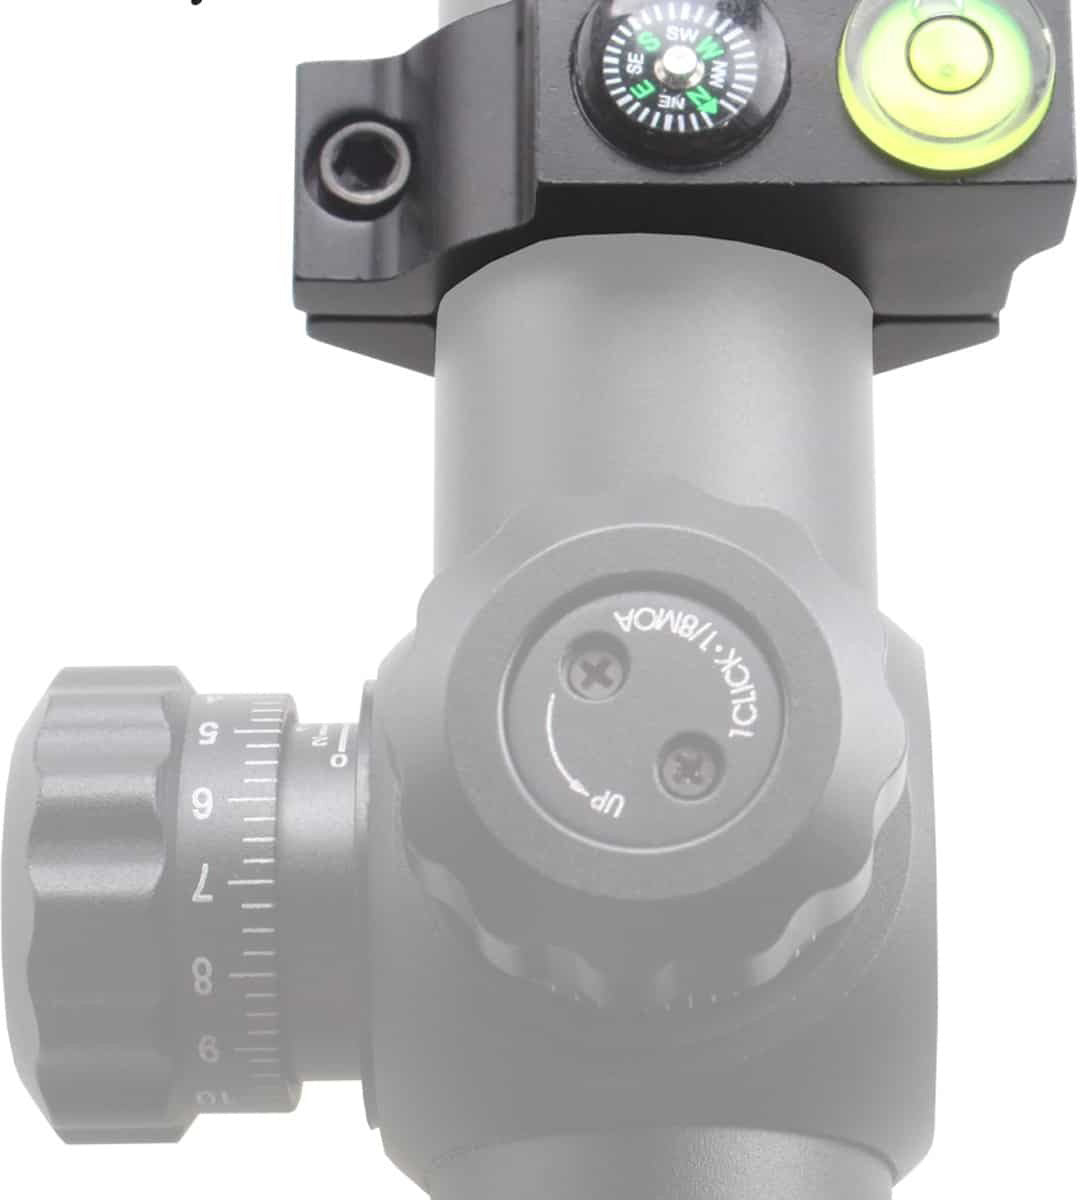 25.4mm ACD Bubble Level Mount w/ compass 5